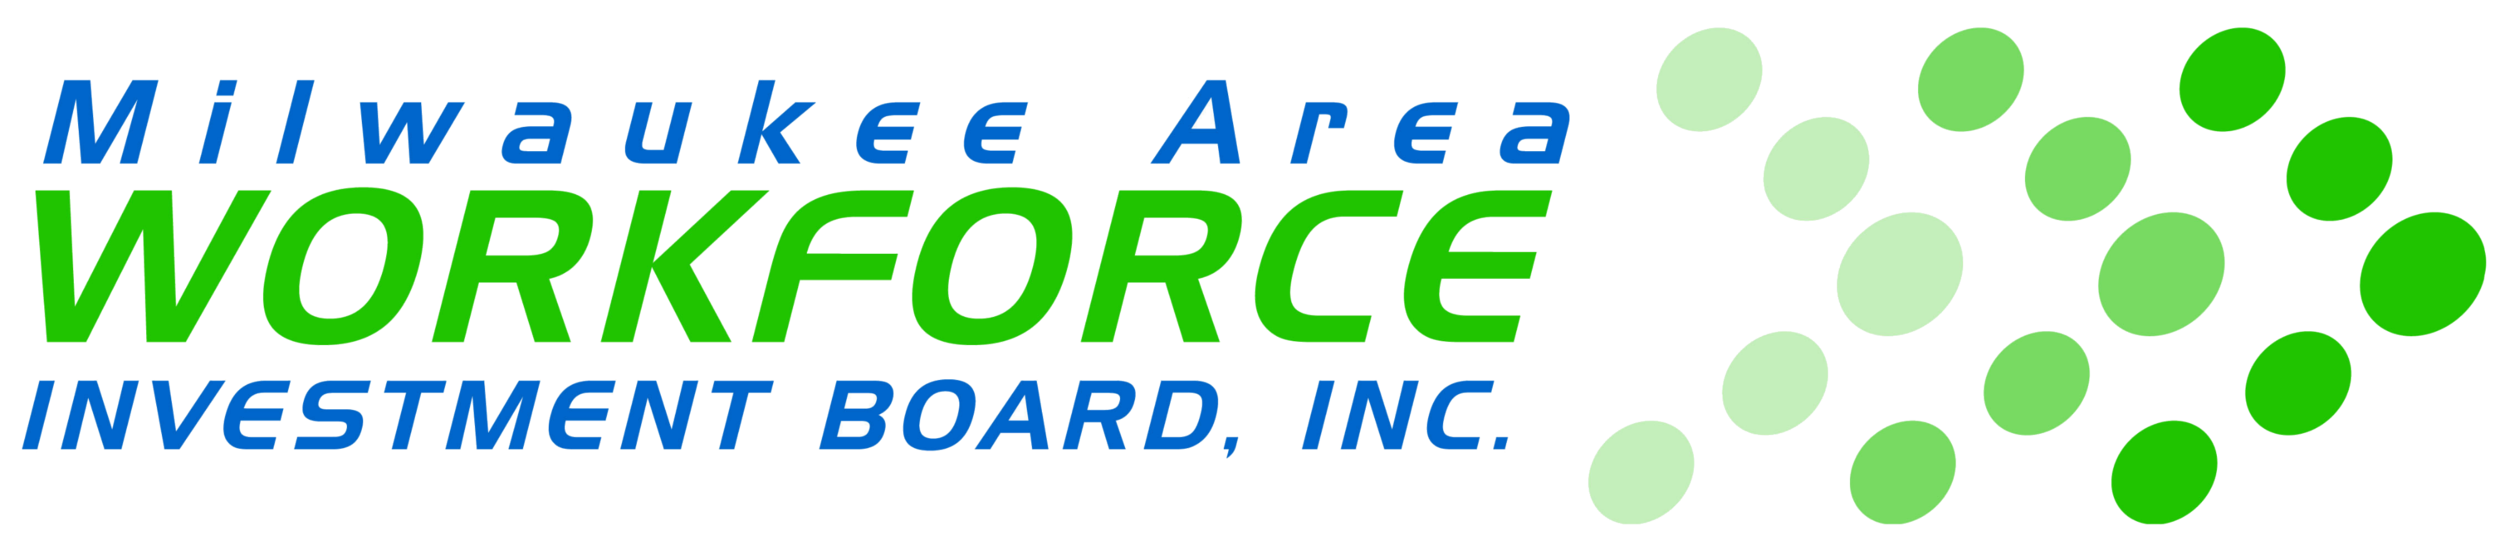 milw-area-workforce-board-logo final.png